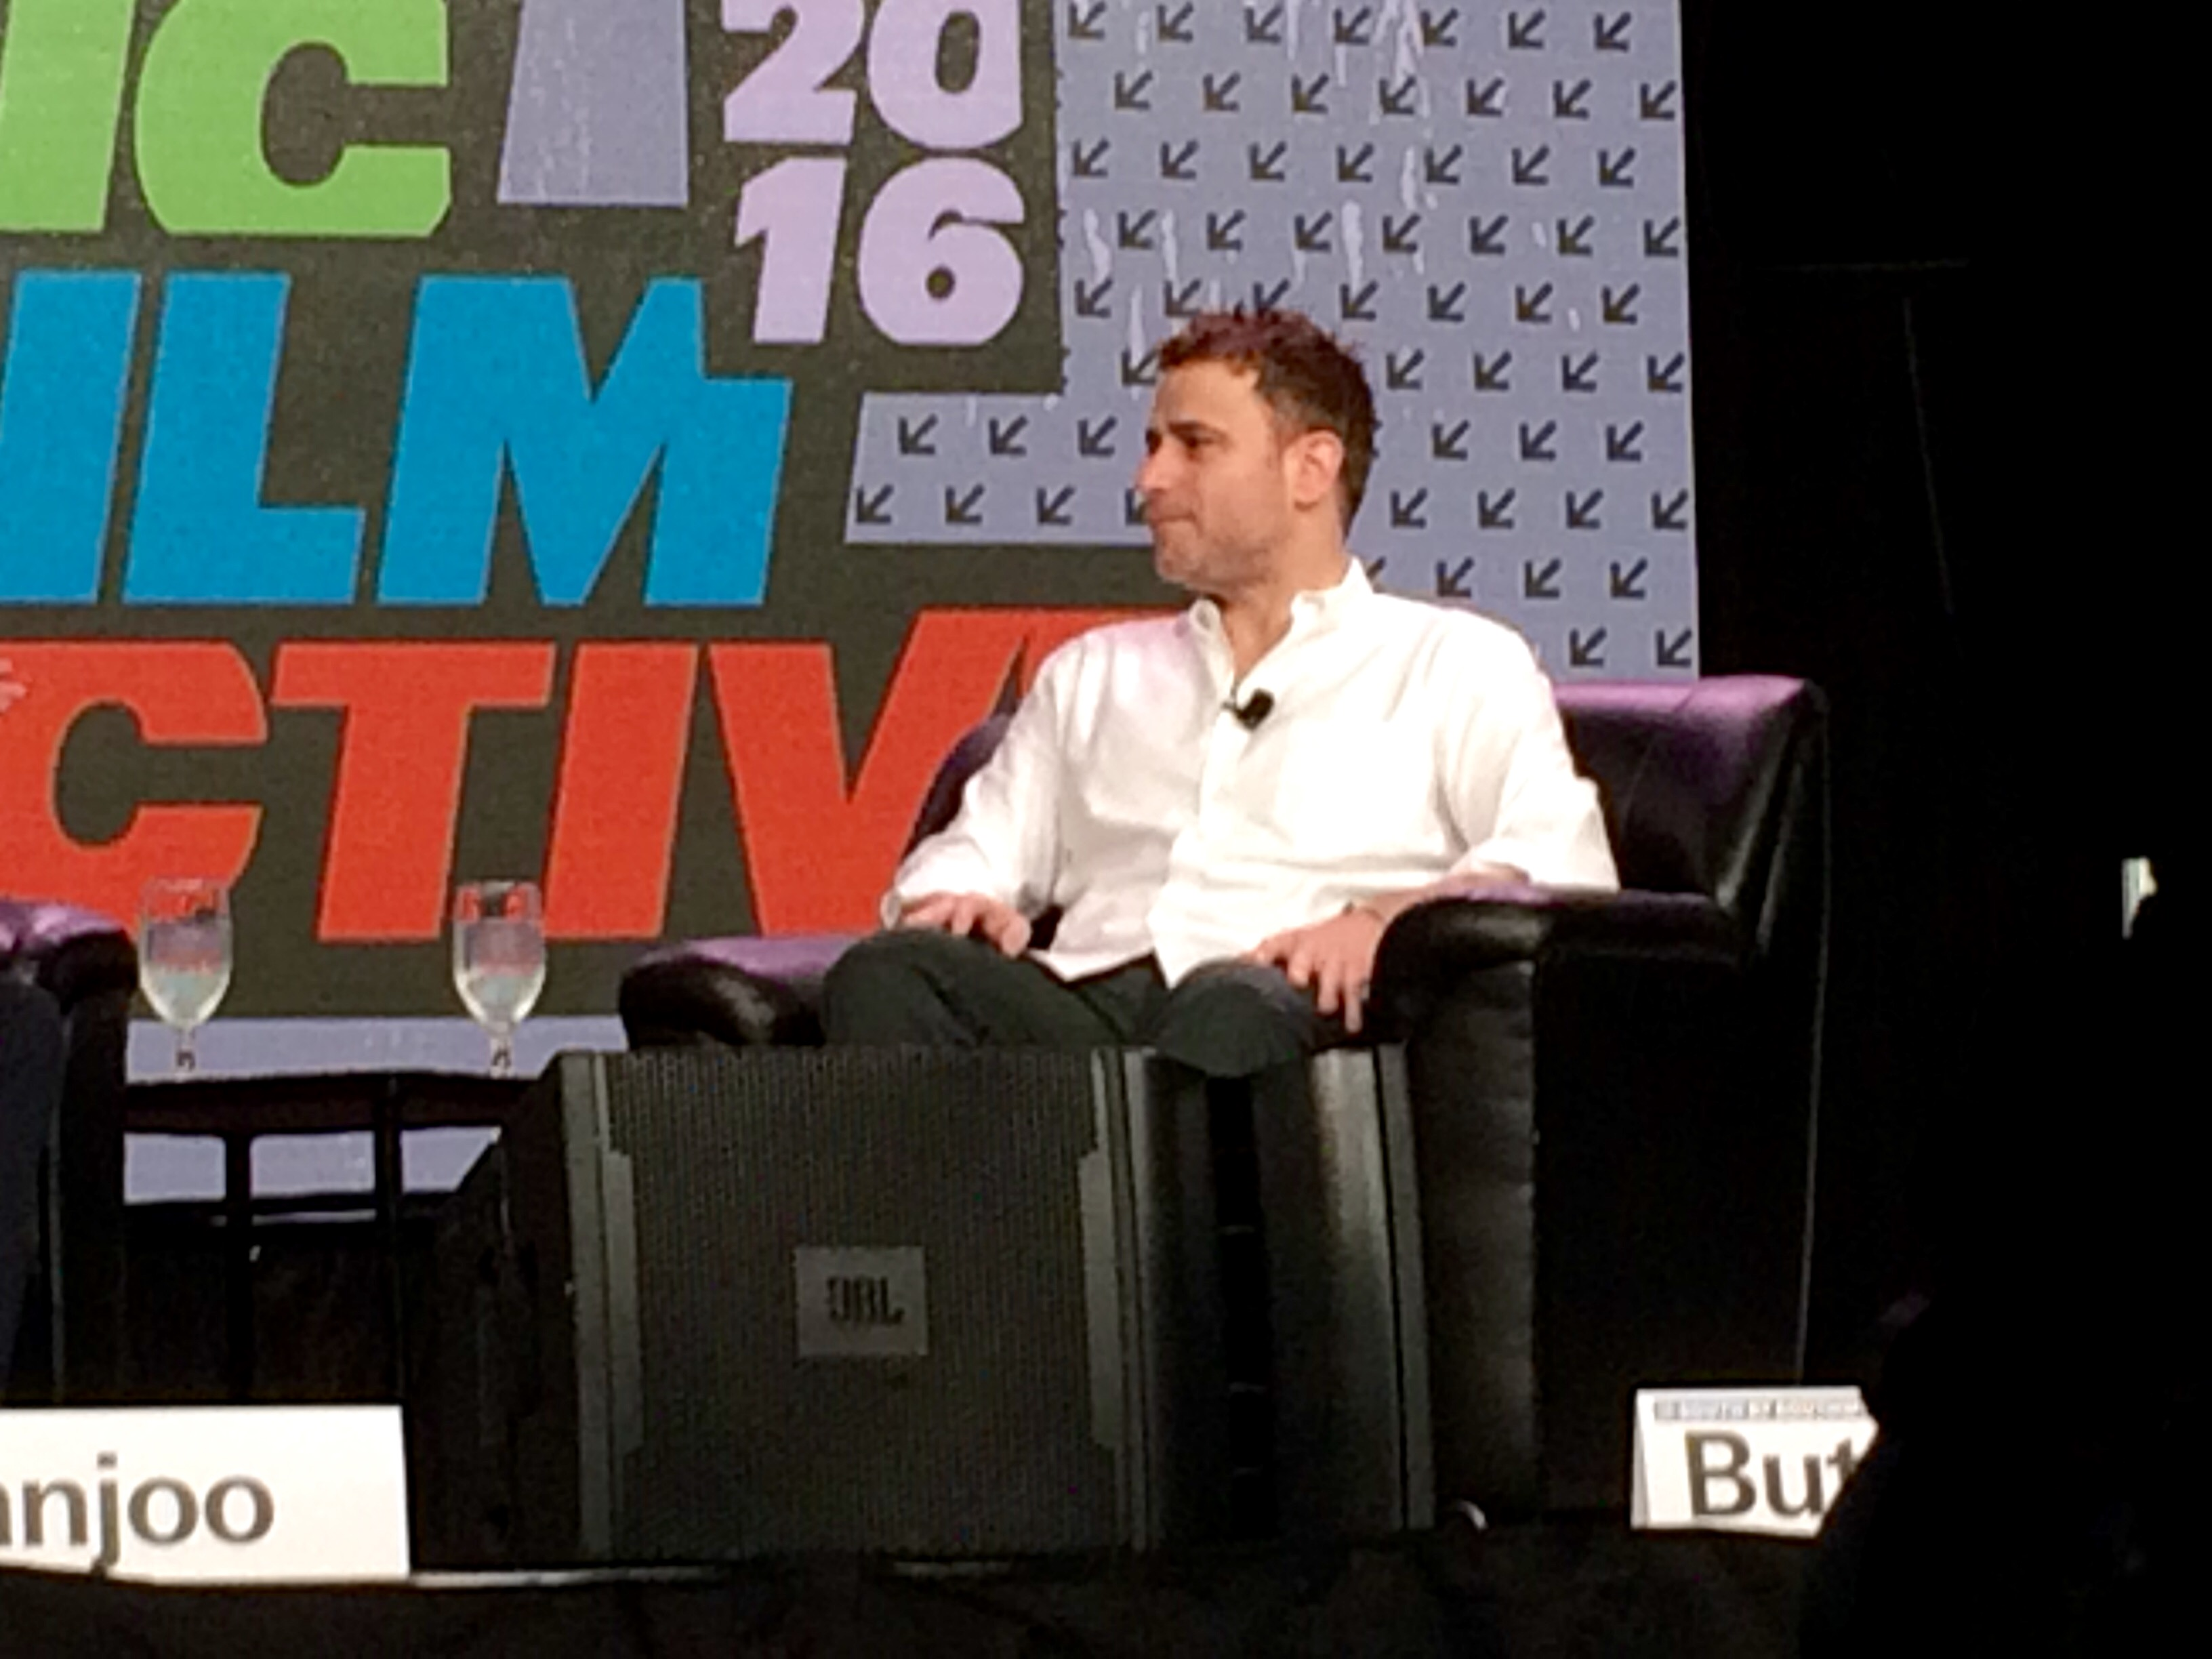 Slack co-founder Stewart Butterfield on stage at South by Southwest in Austin, March 2016.